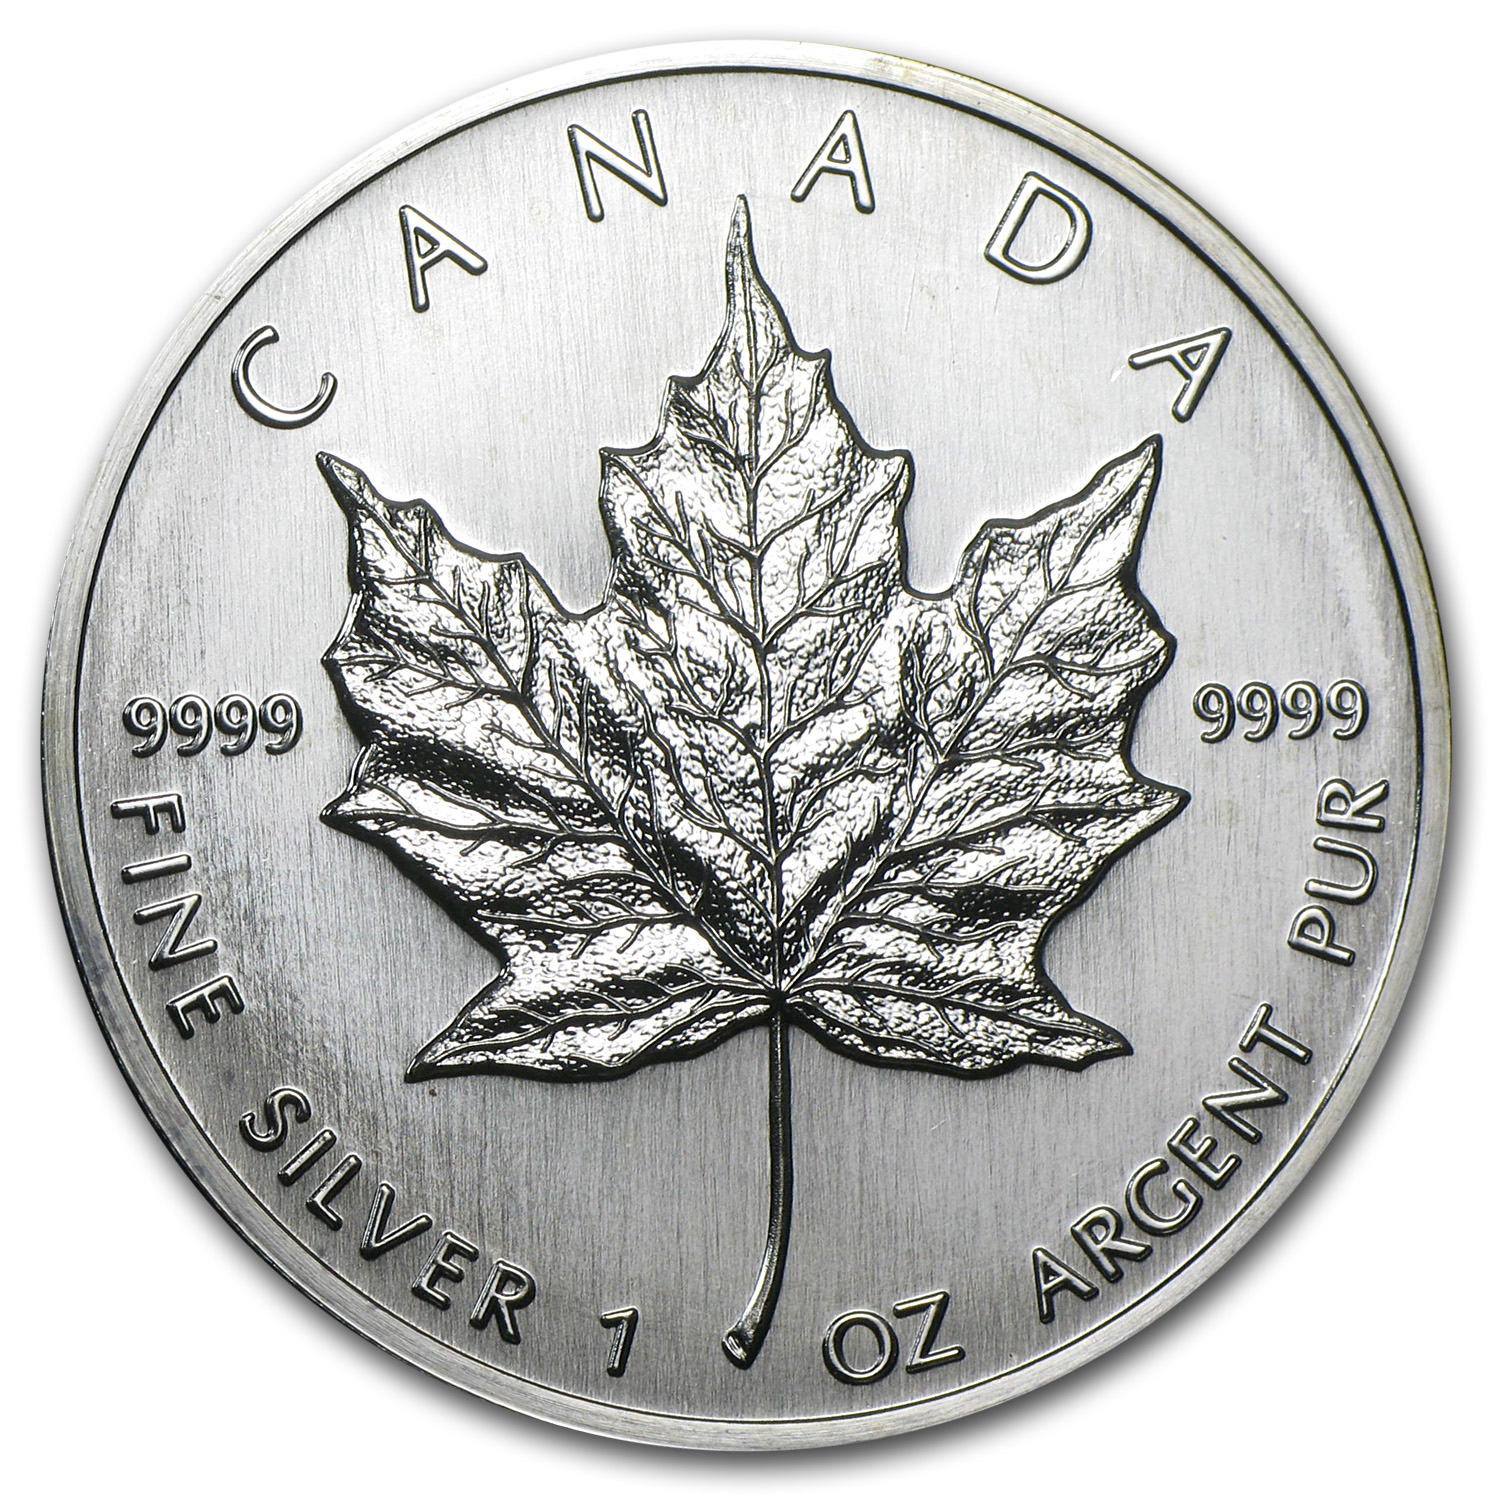 1989 Canada 1 oz Silver Maple Leaf BU